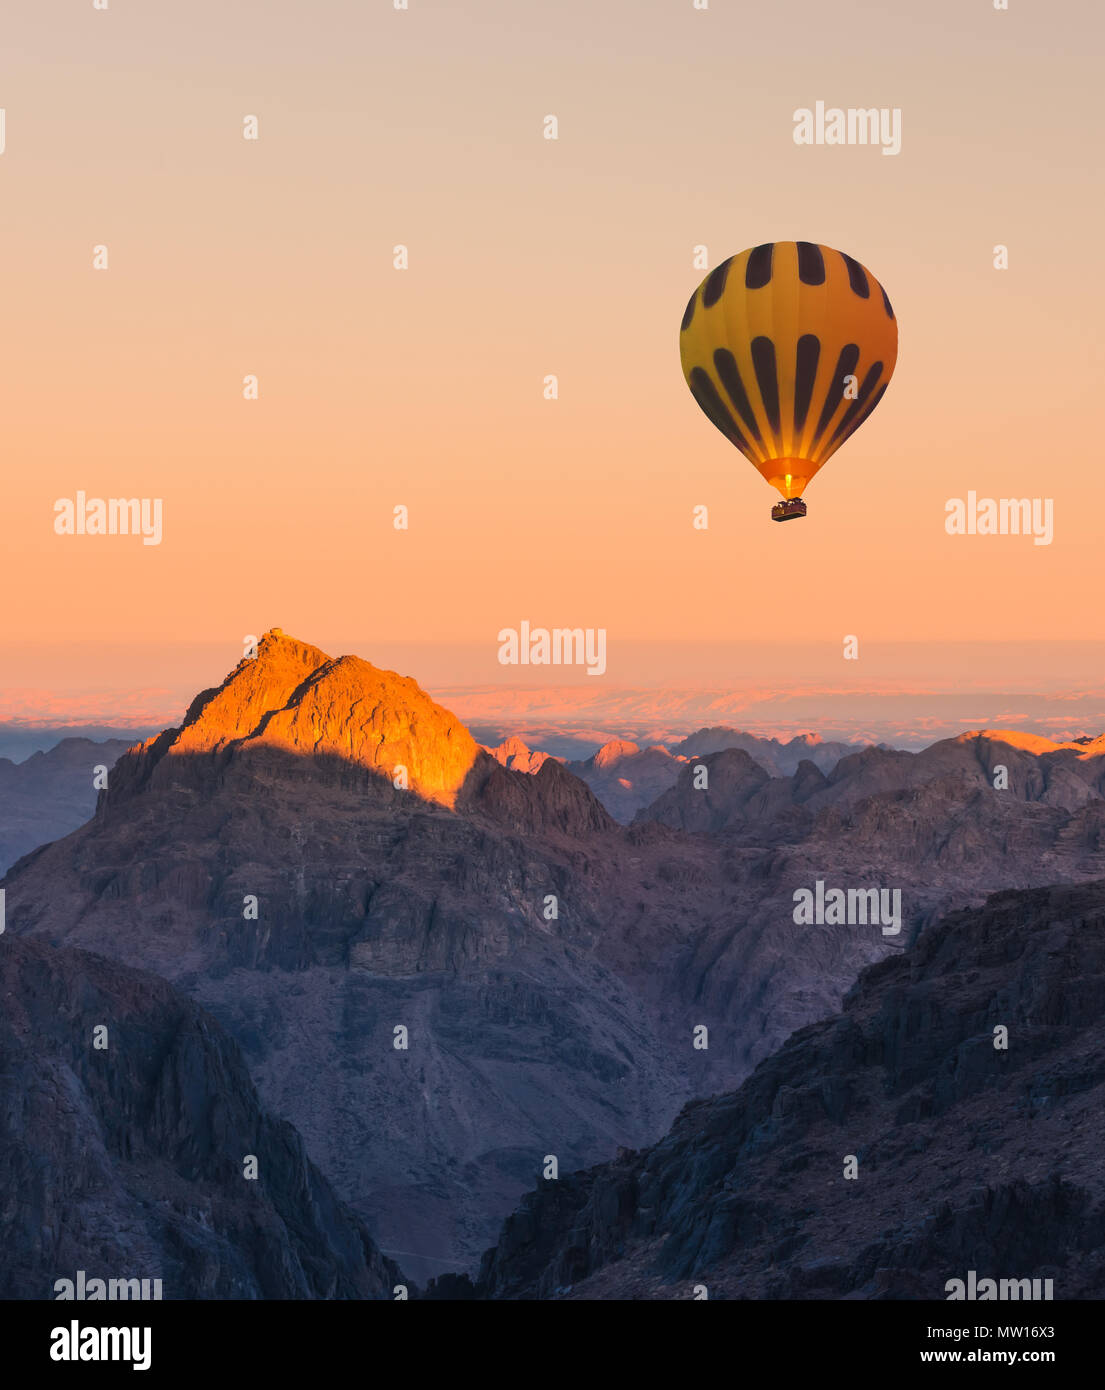 Hot air balloon over Mount Moses Sinai sunset - Stock Image